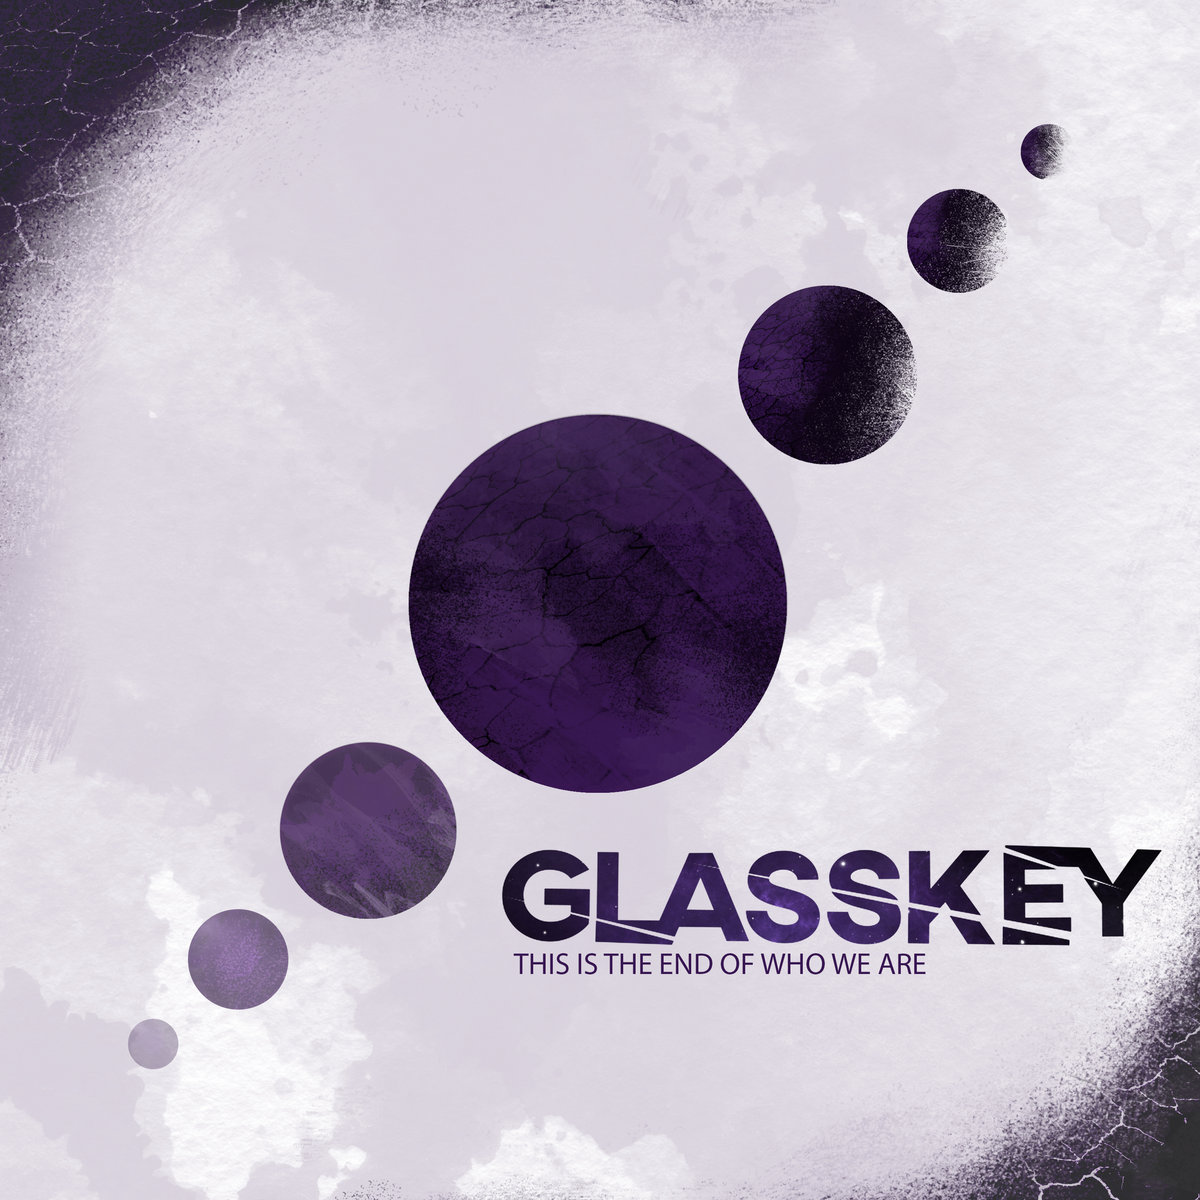 Glasskey - This Is the End of Who We Are (2019)